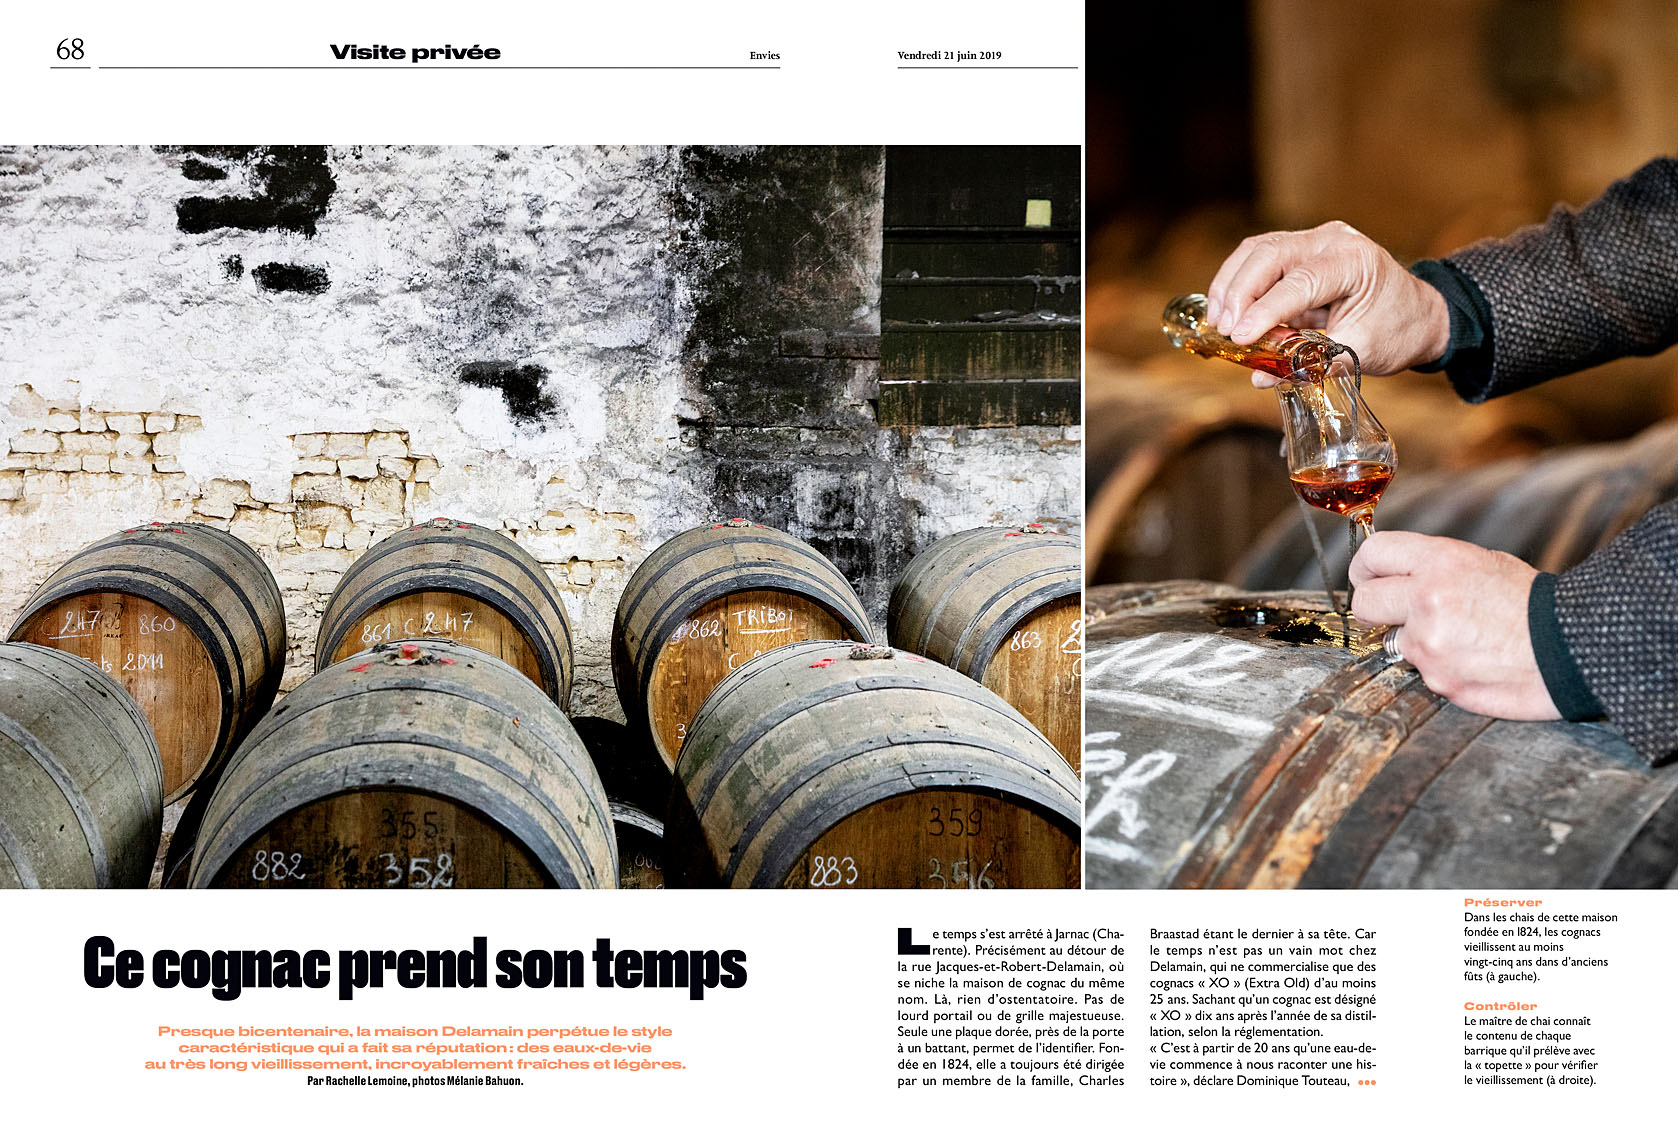 Le Parisien Week-end du 21 juin 2019. Visite privée de la maison de cognac Delamain. Article Rachelle Lemoine.